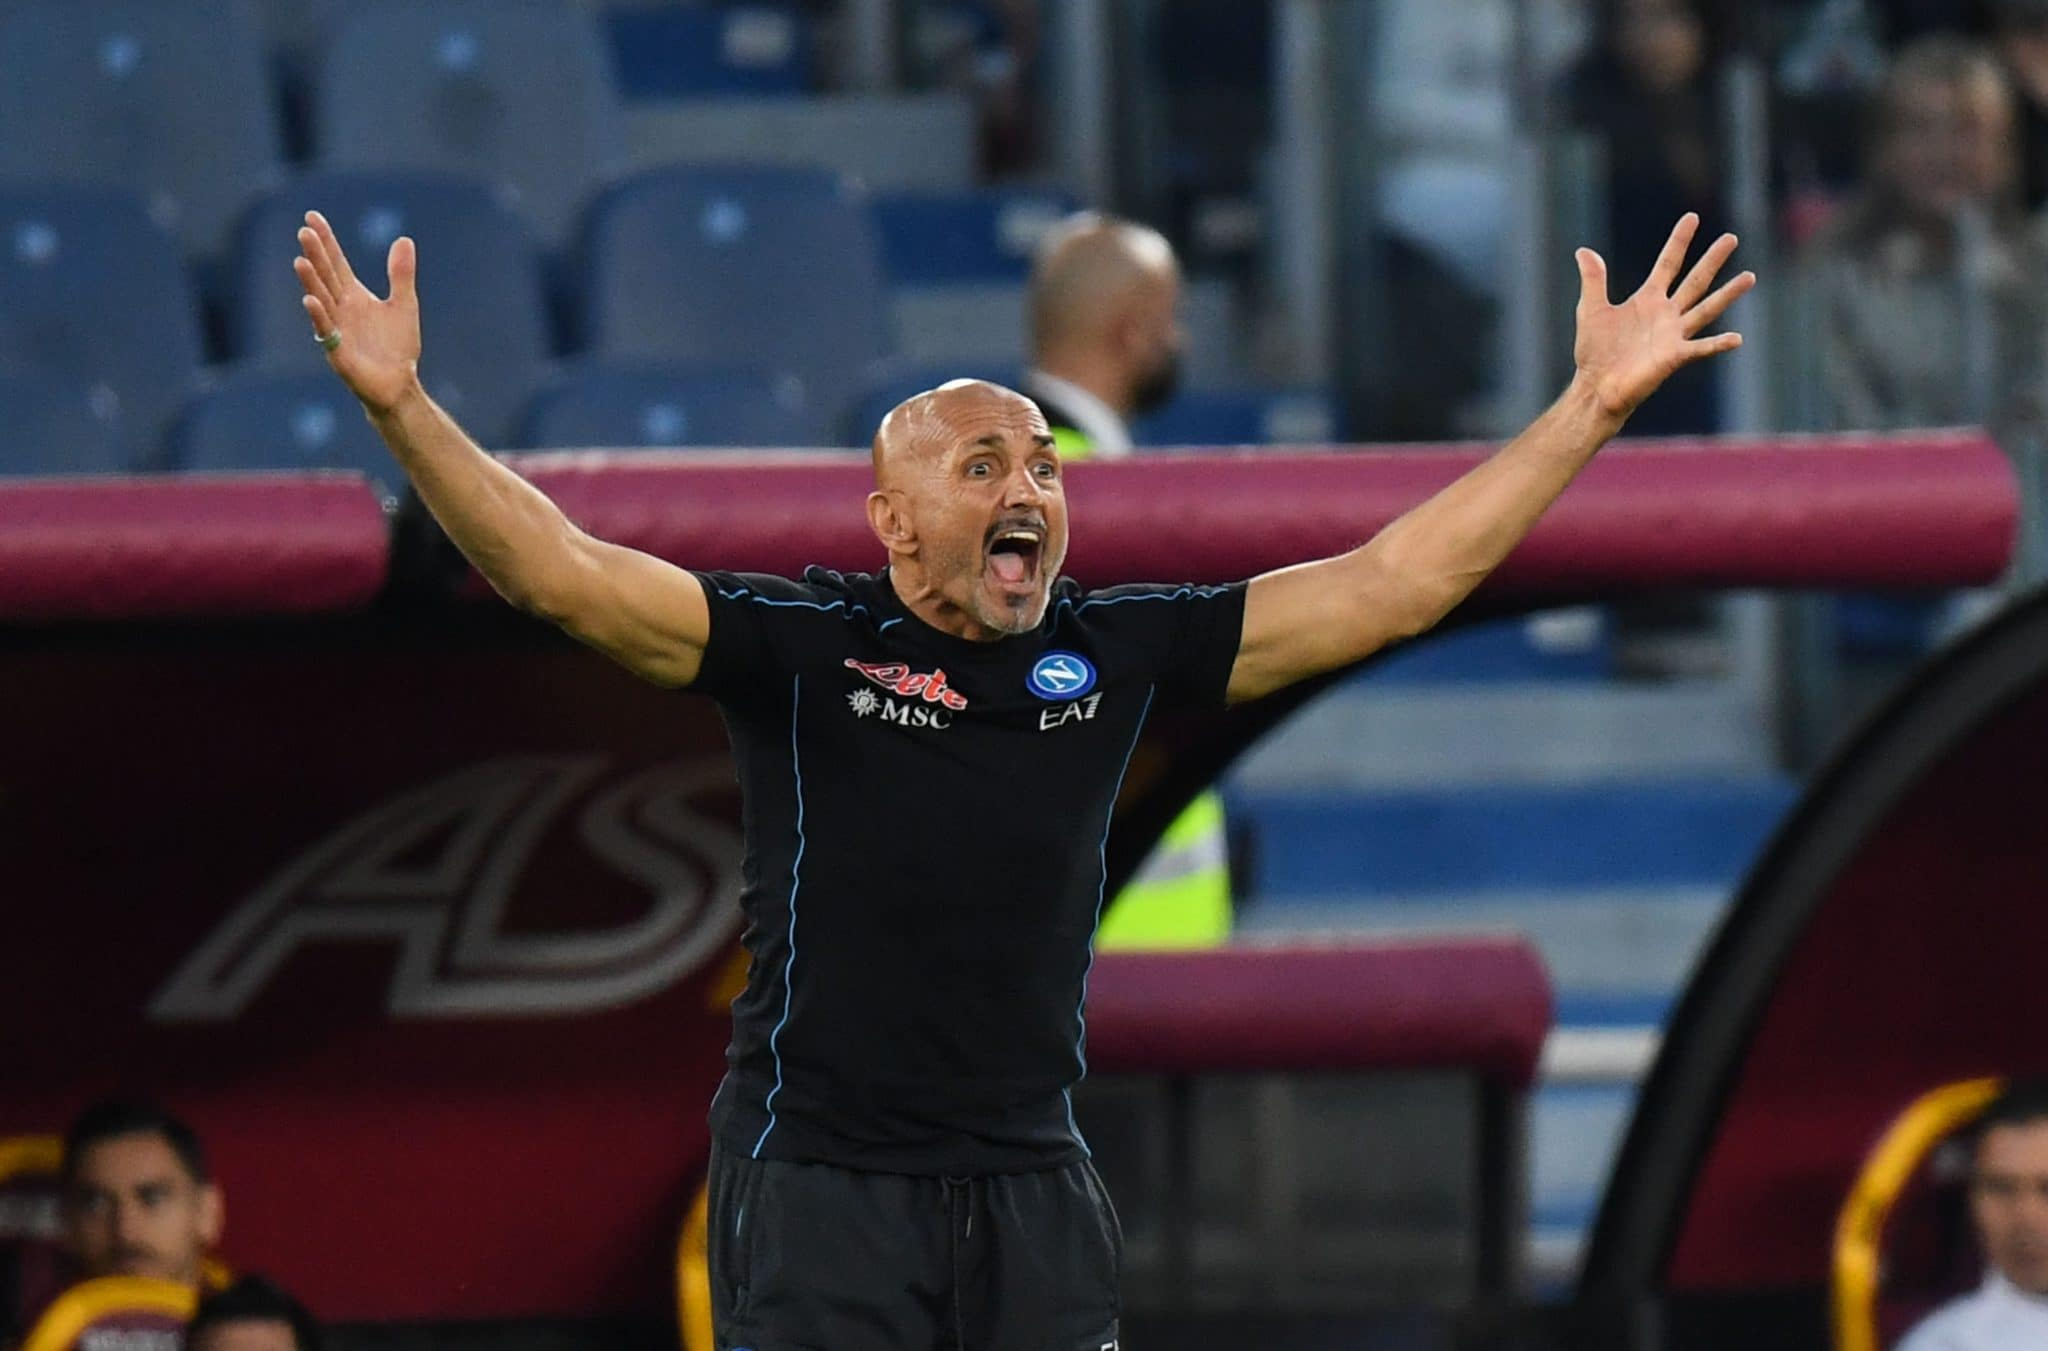 ROME, ITALY - OCTOBER 24: Luciano Spalletti head coach of SSC Napoli gestures during the Serie A match between AS Roma and SSC Napoli at Stadio Olimpico on October 24, 2021 in Rome, Italy. (Photo by Silvia Lore/Getty Images)